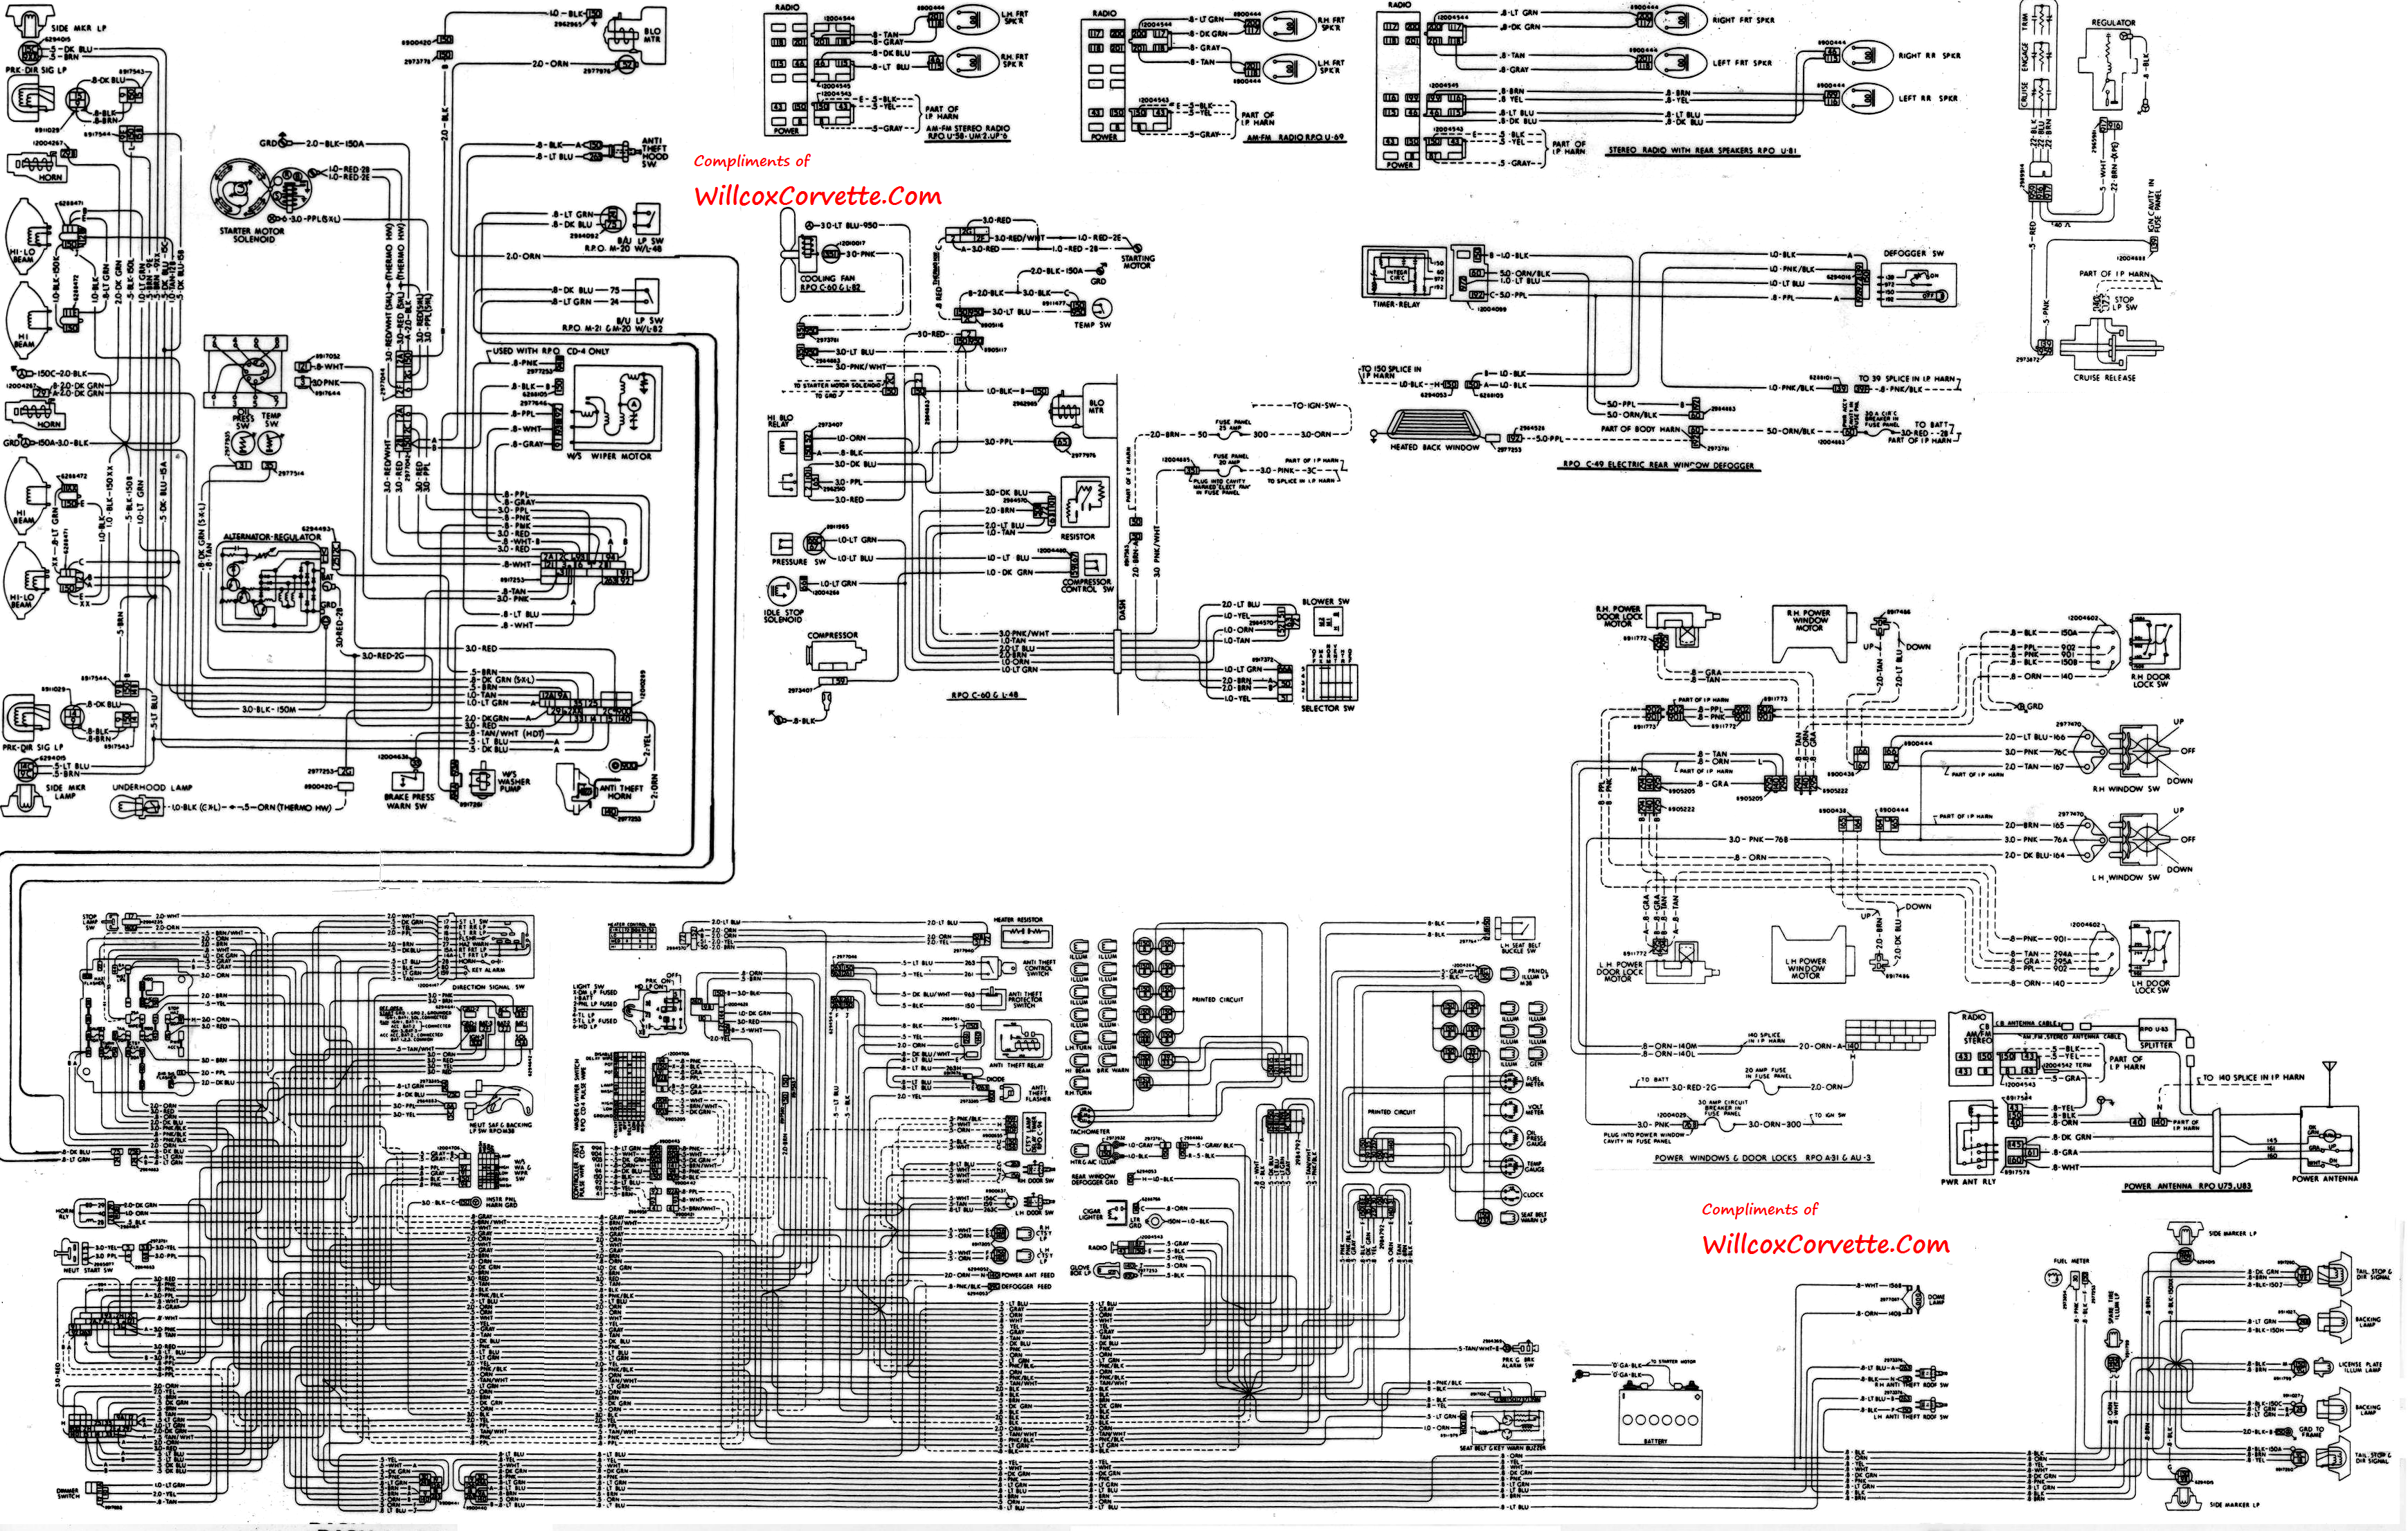 1979 wire diagram 1978 corvette wiring diagram pdf 1980 el camino wiring diagram  at mifinder.co